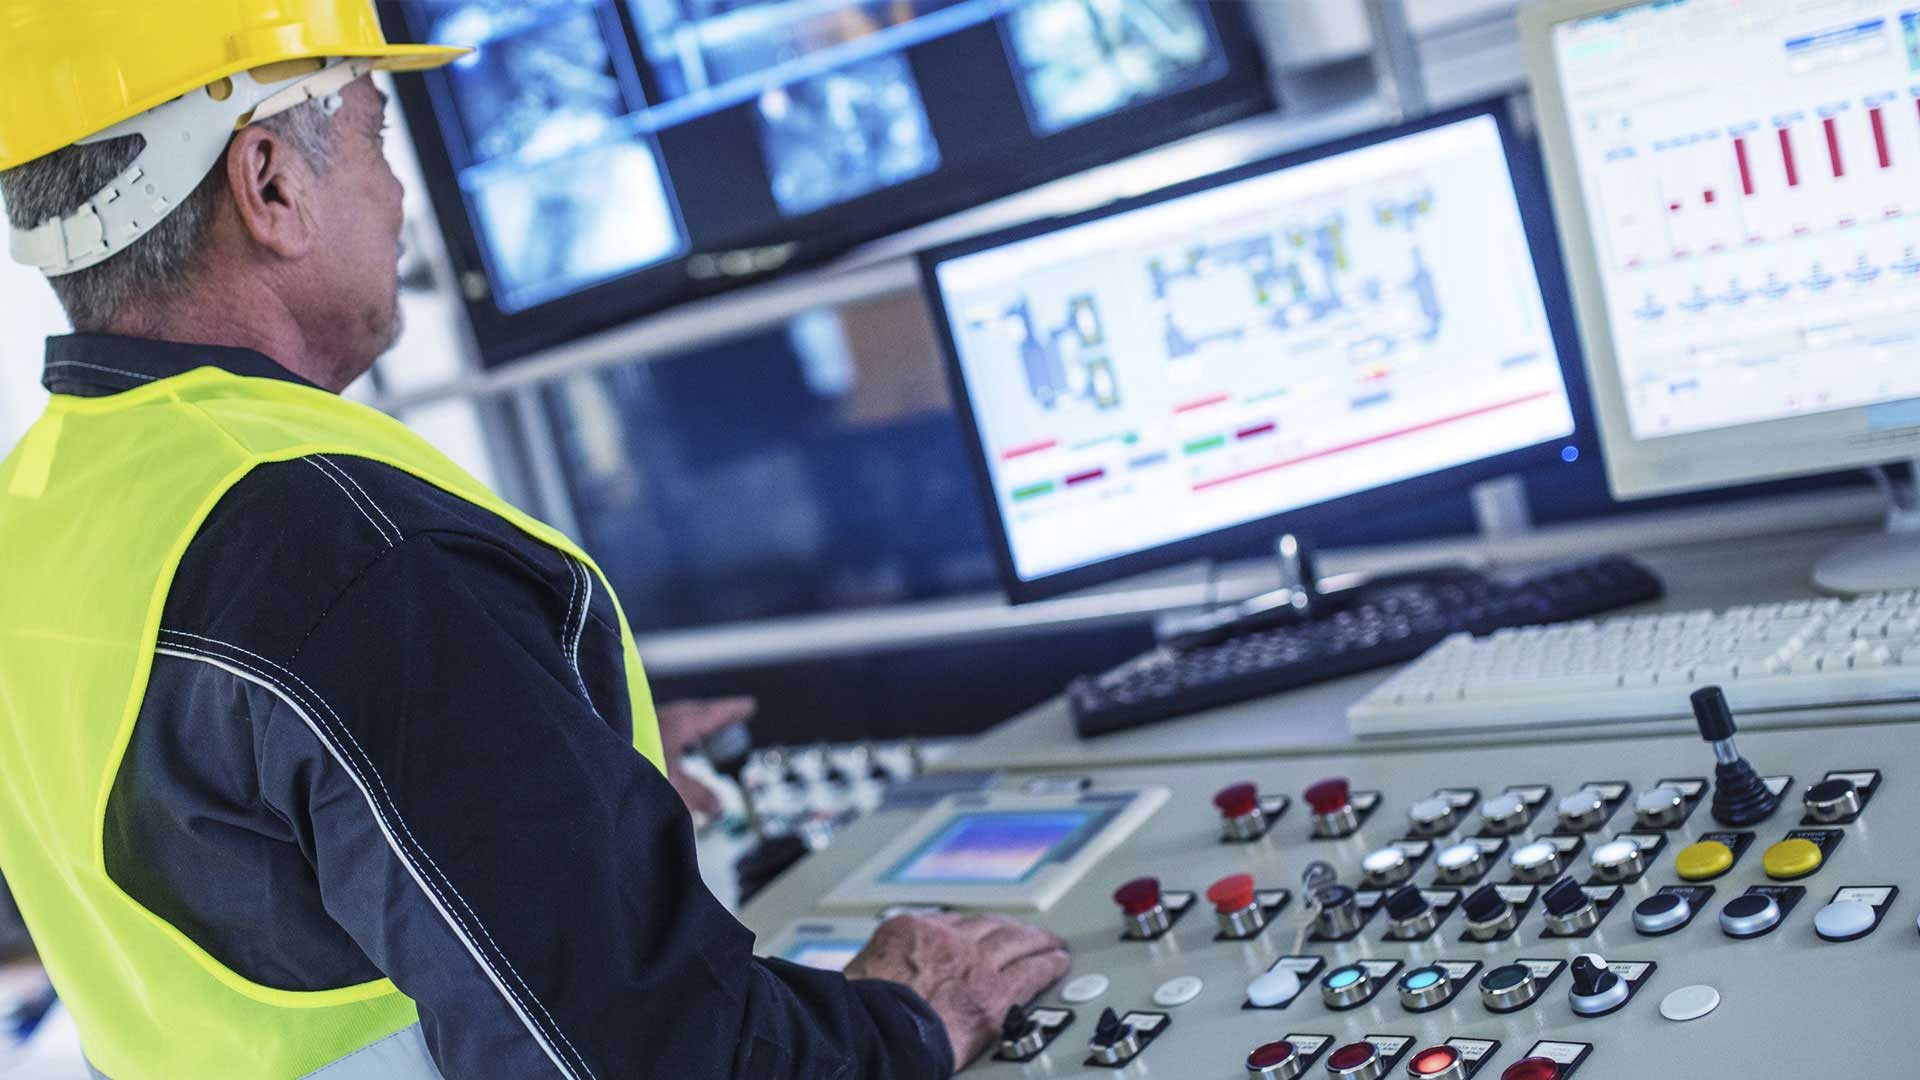 Get more from your control room video and signal management infrastructure.